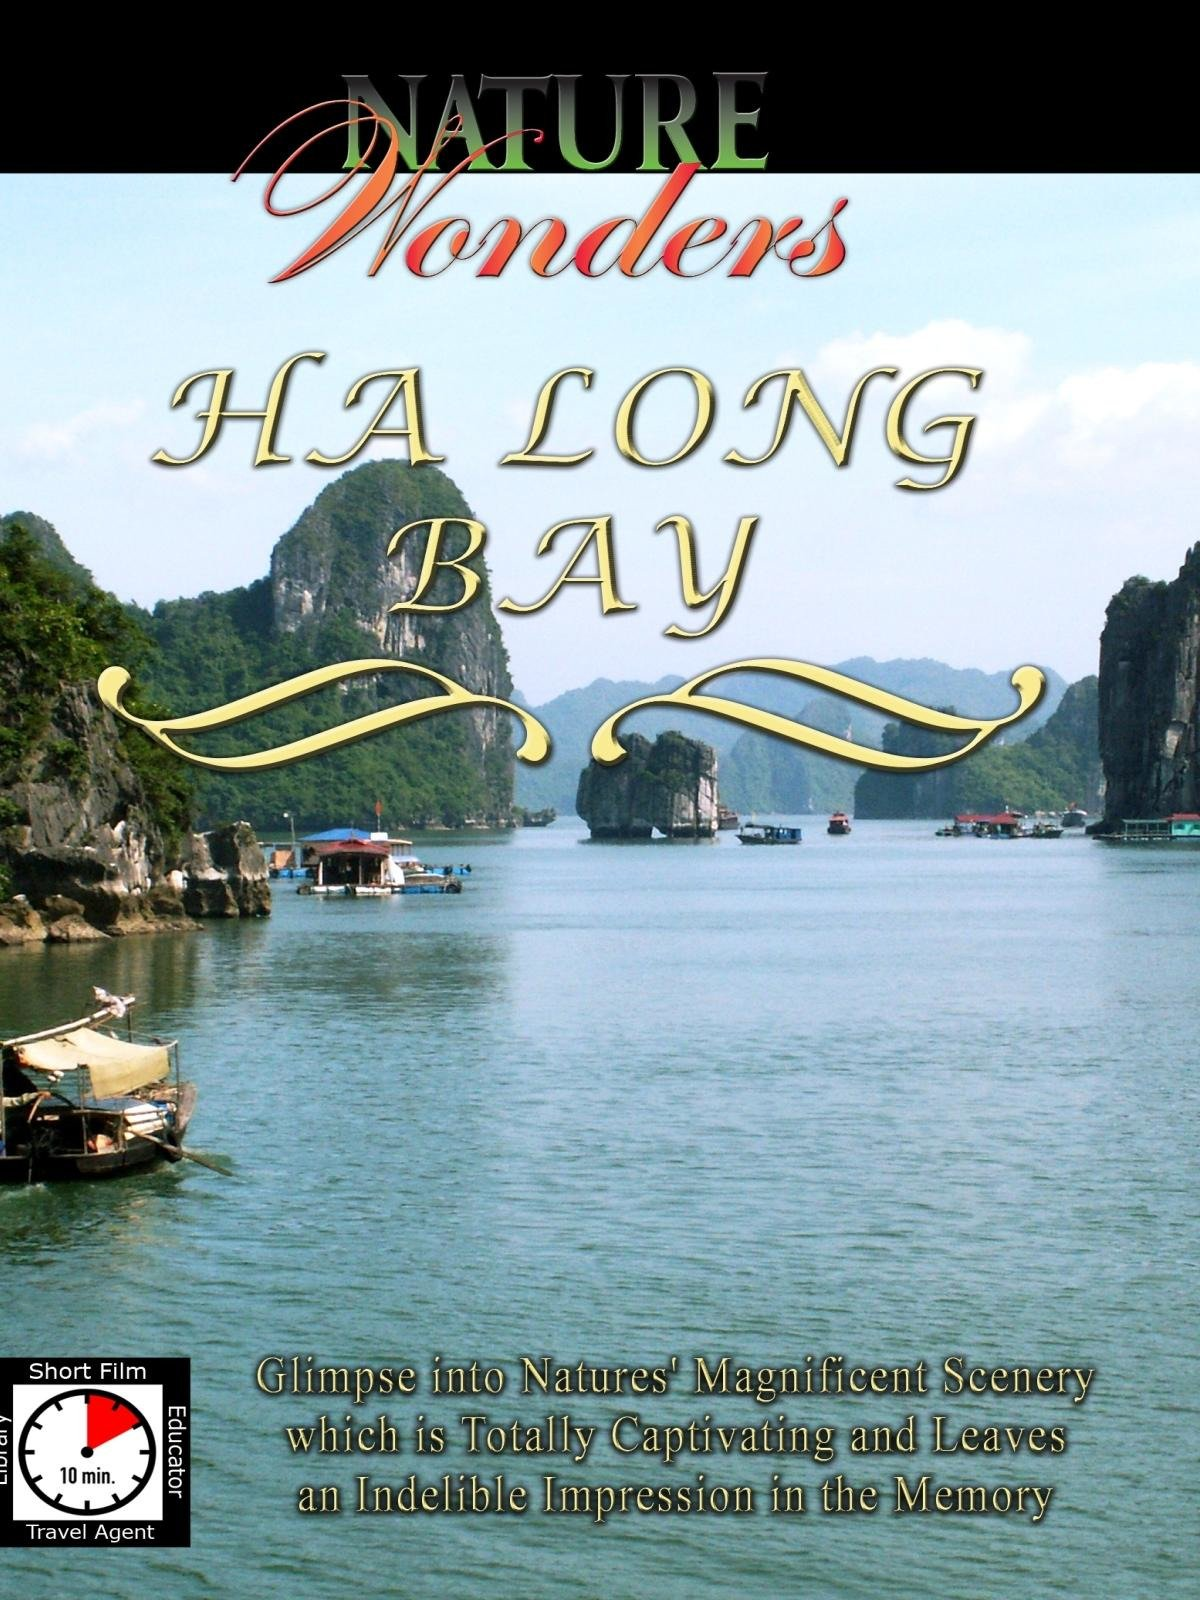 Nature Wonders - Ha Long Bay - Vietnam on Amazon Prime Instant Video UK